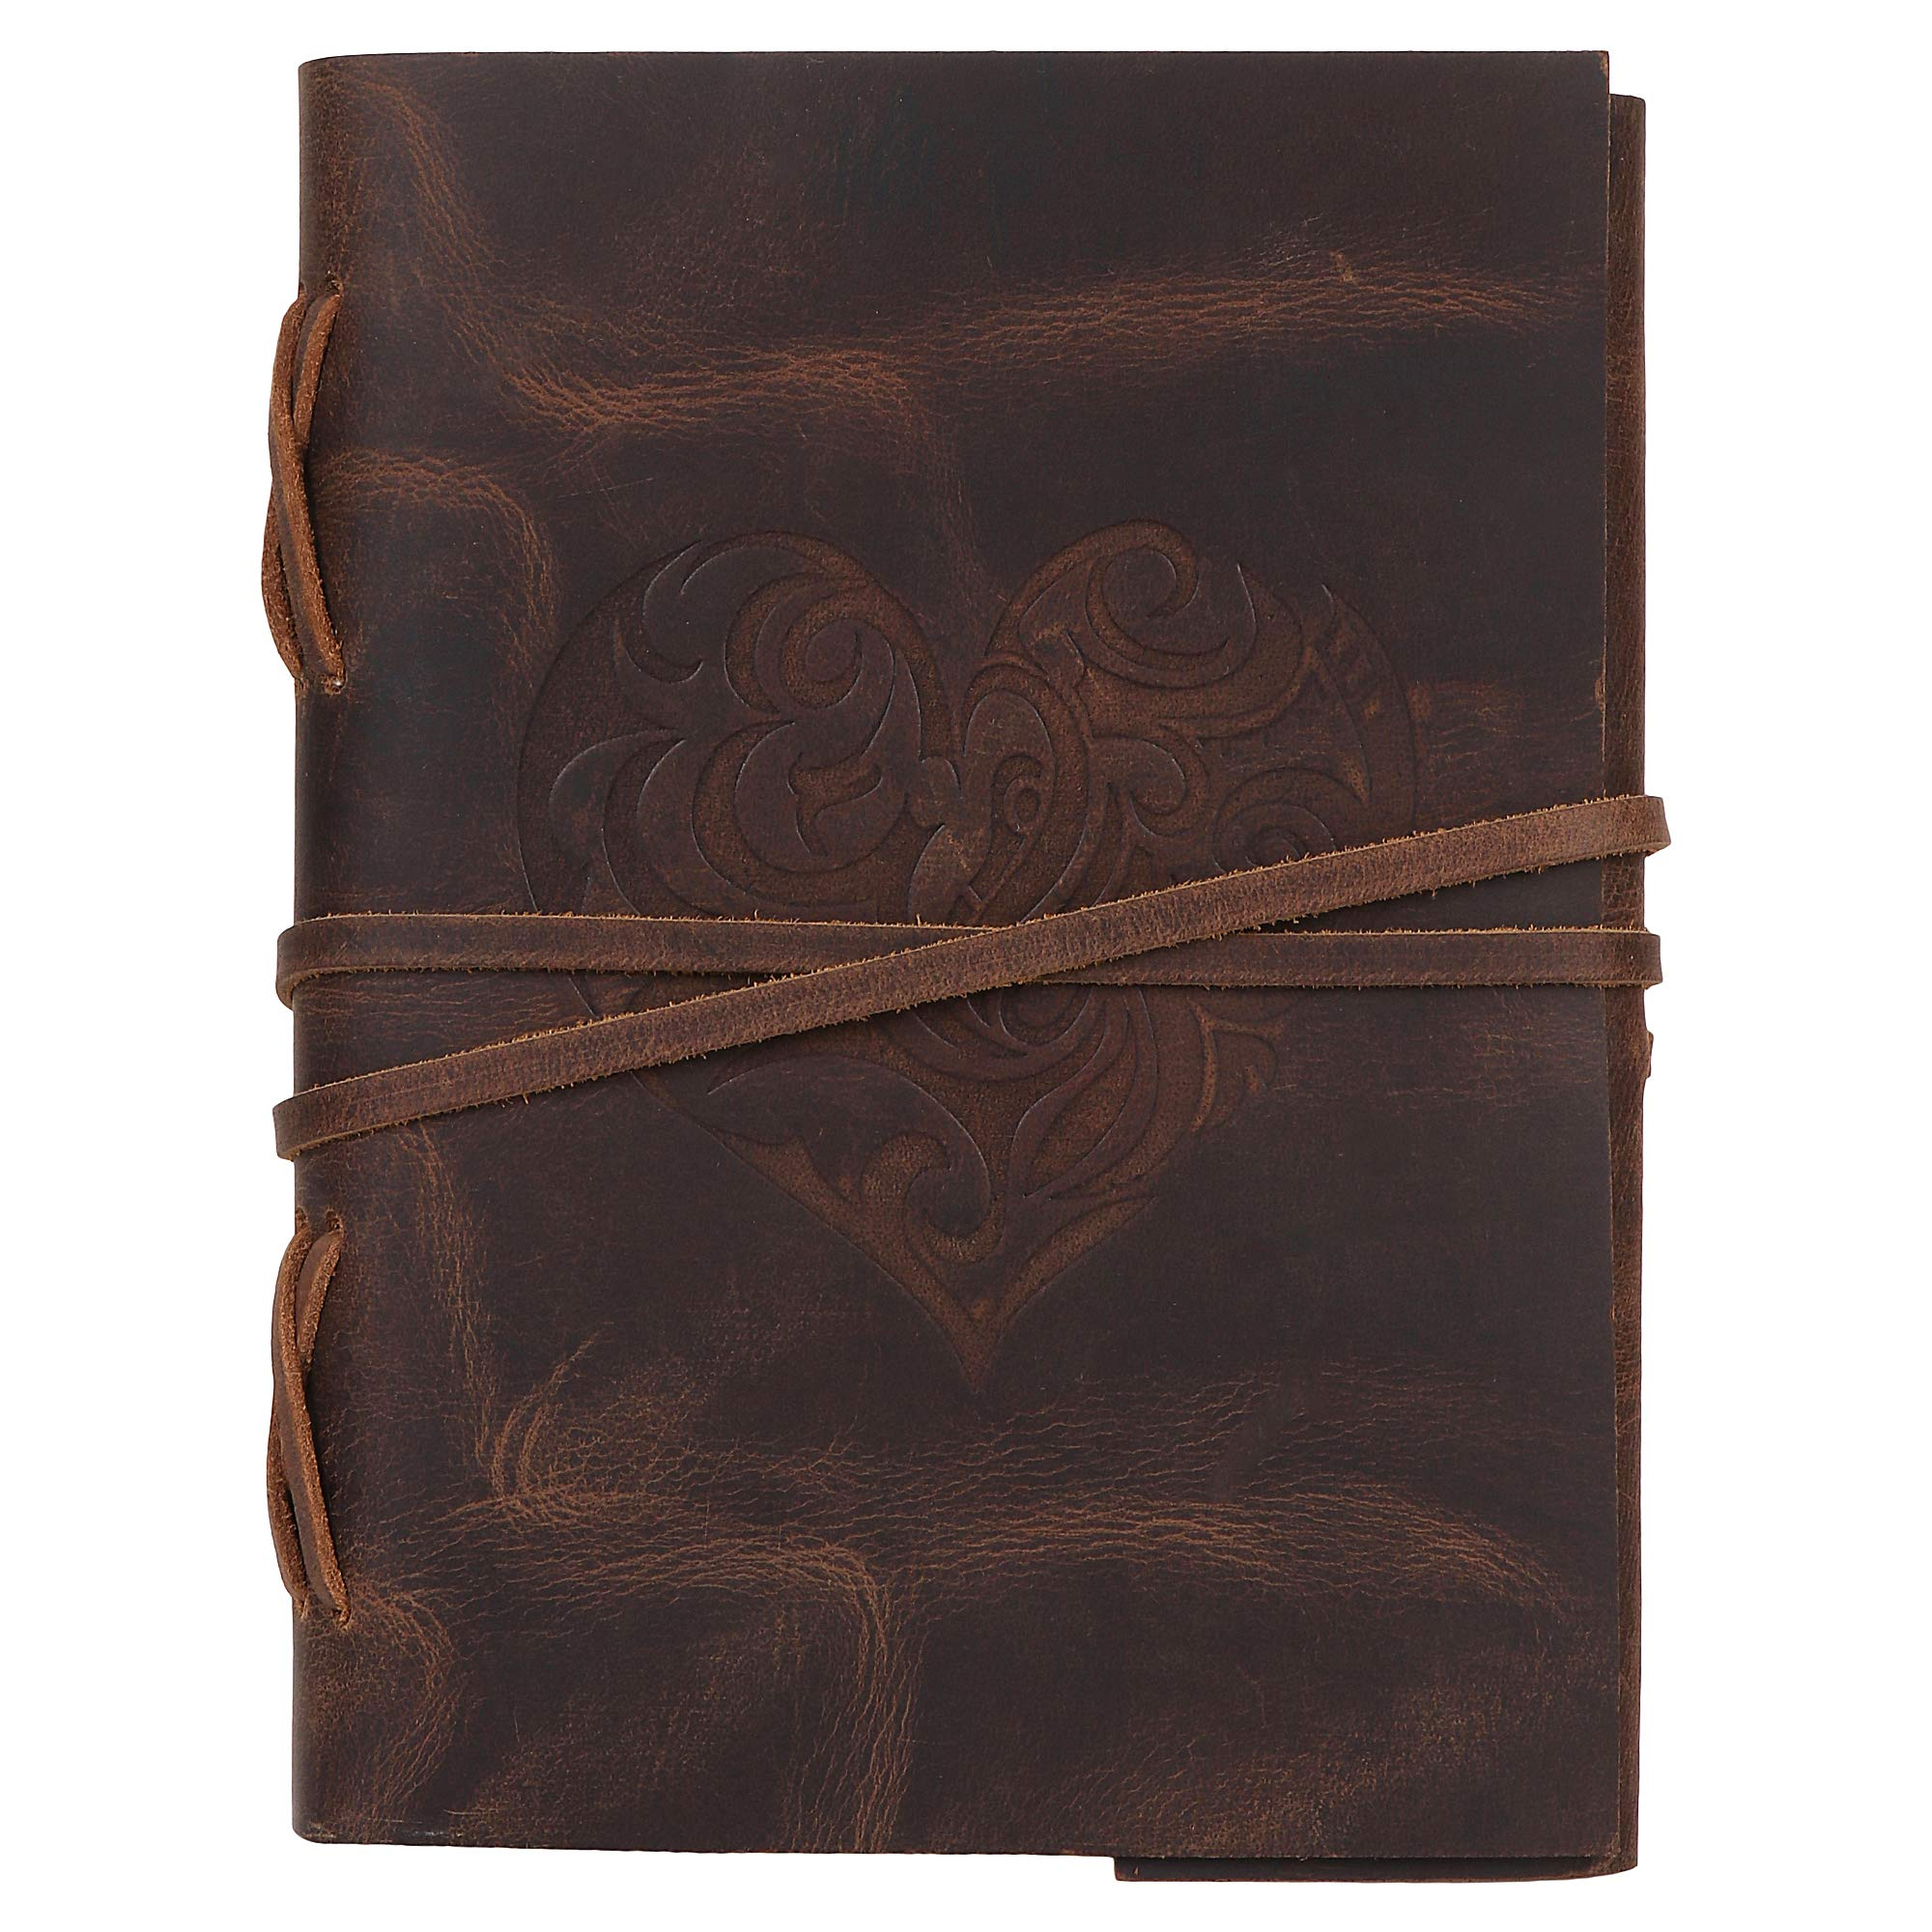 Beautiful leather bound journal